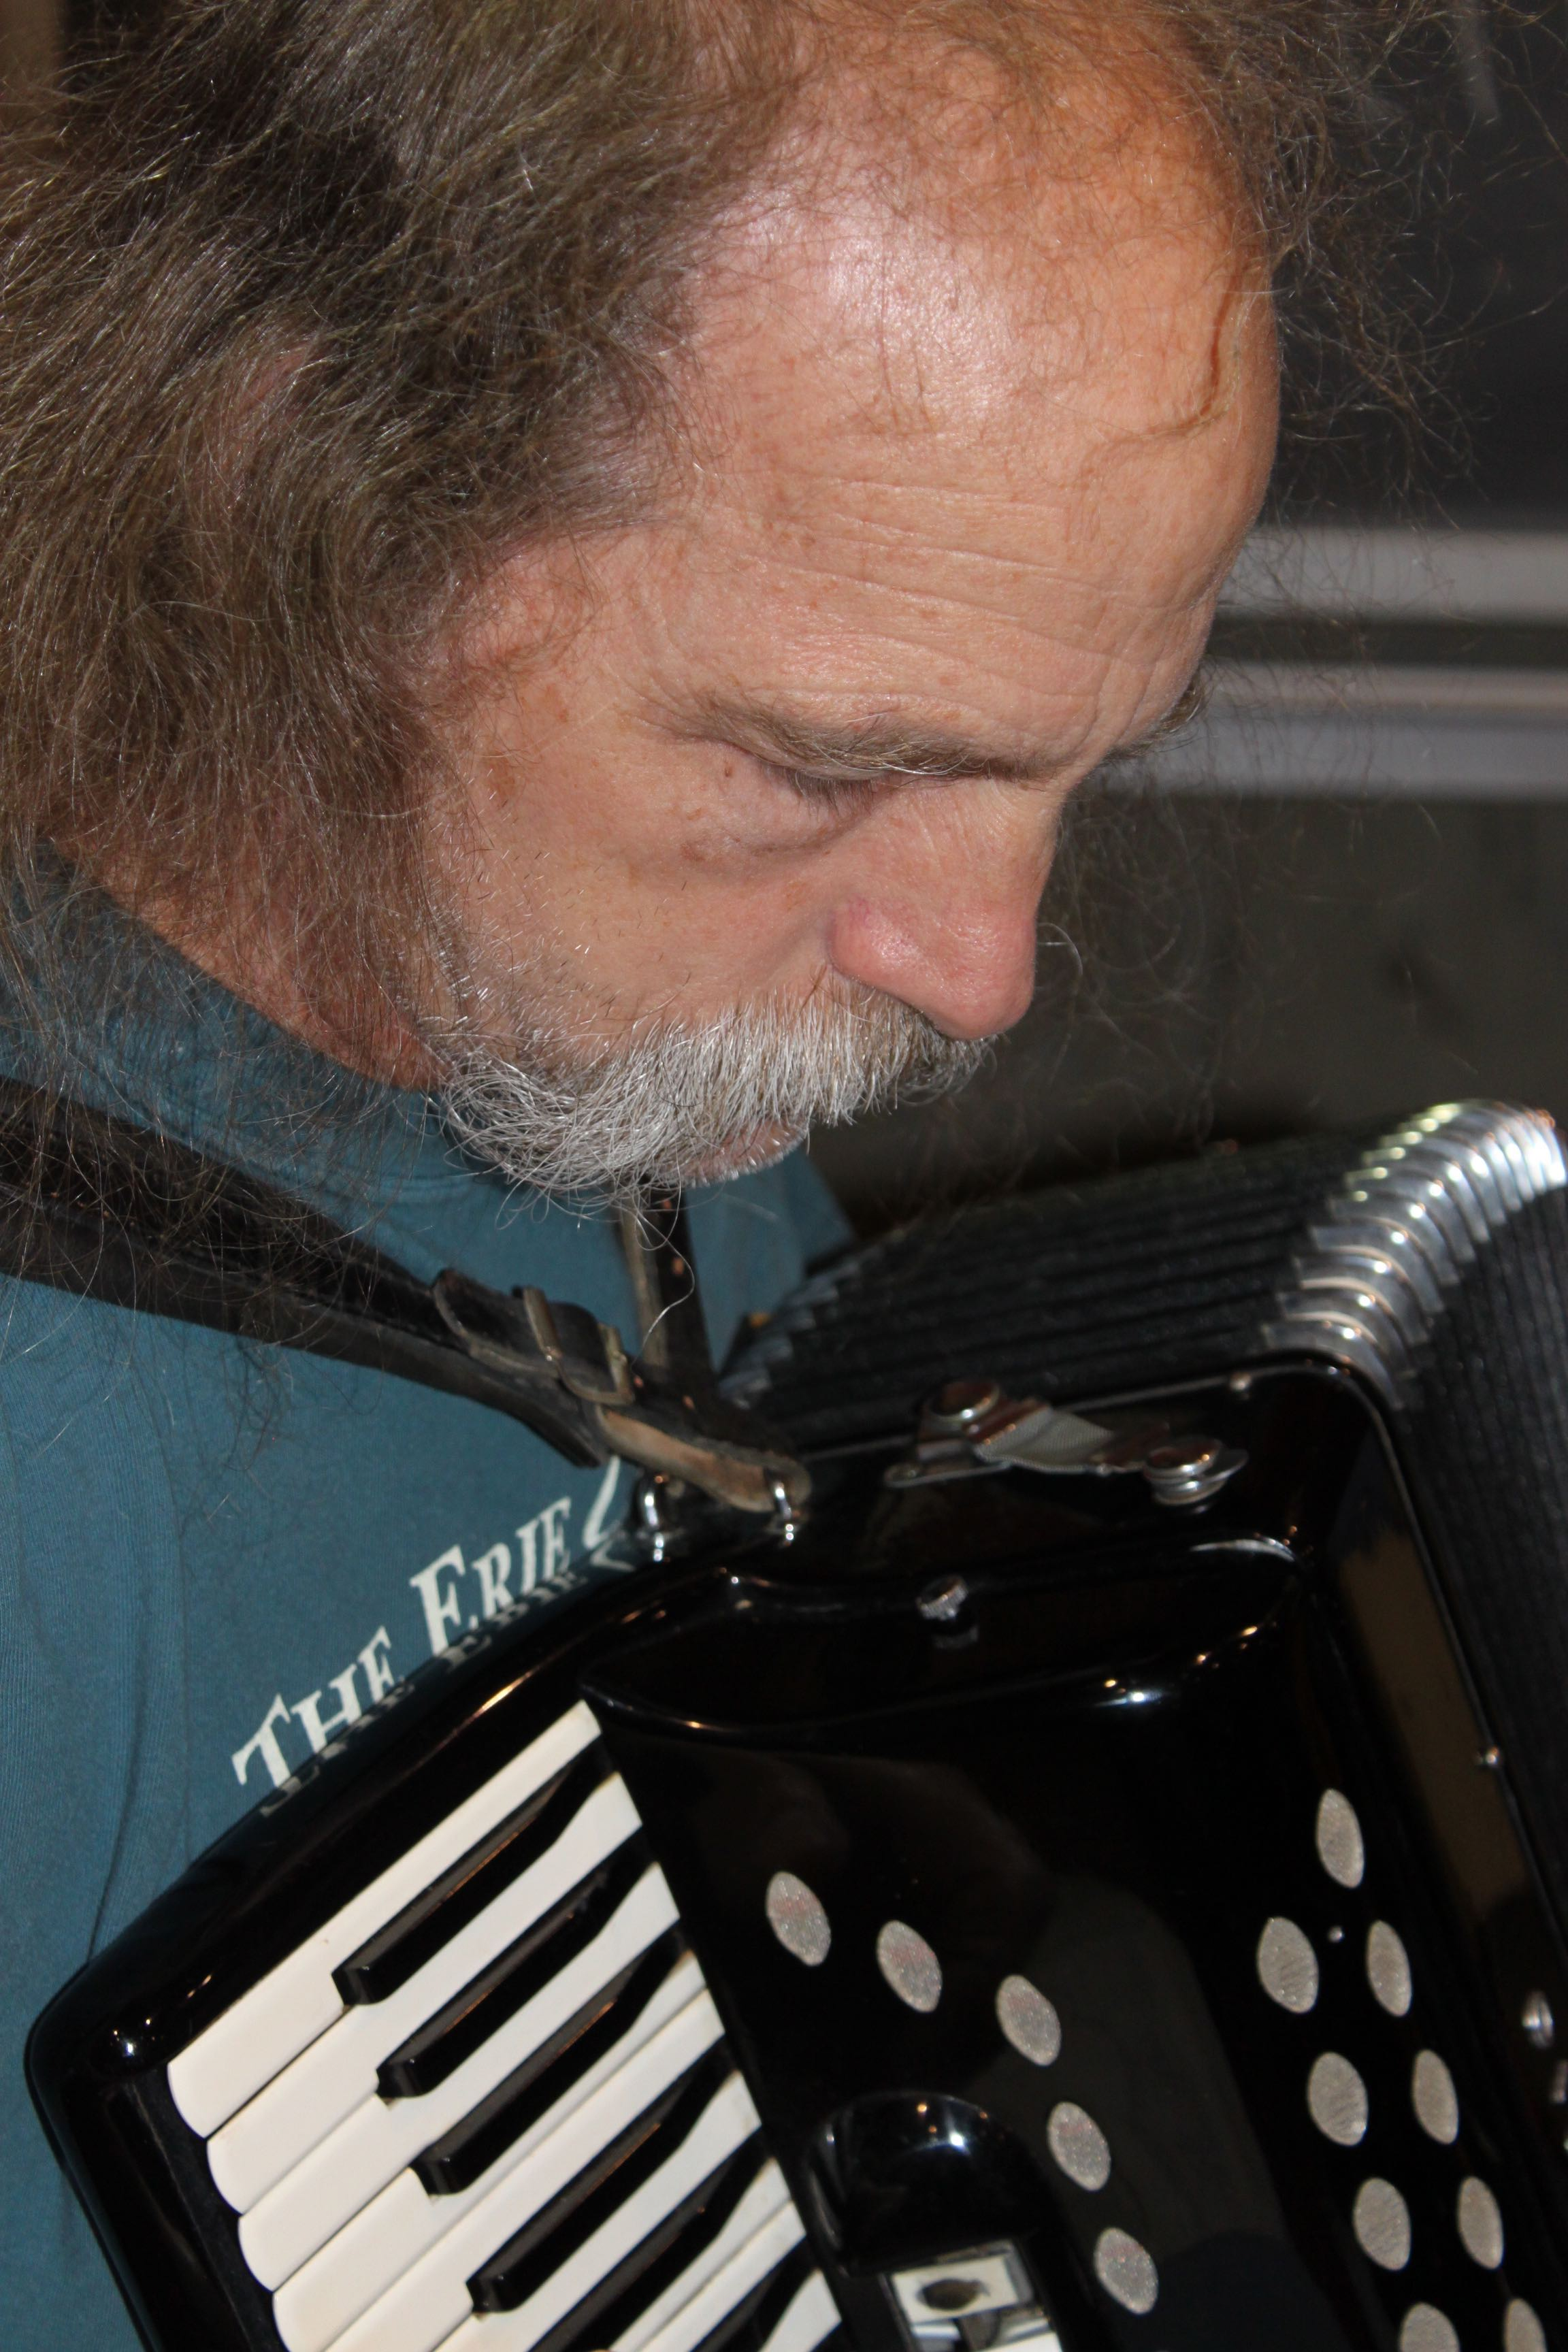 Tony Pisano of North Adams carries the melody on accordion. Photo by Susan Geller